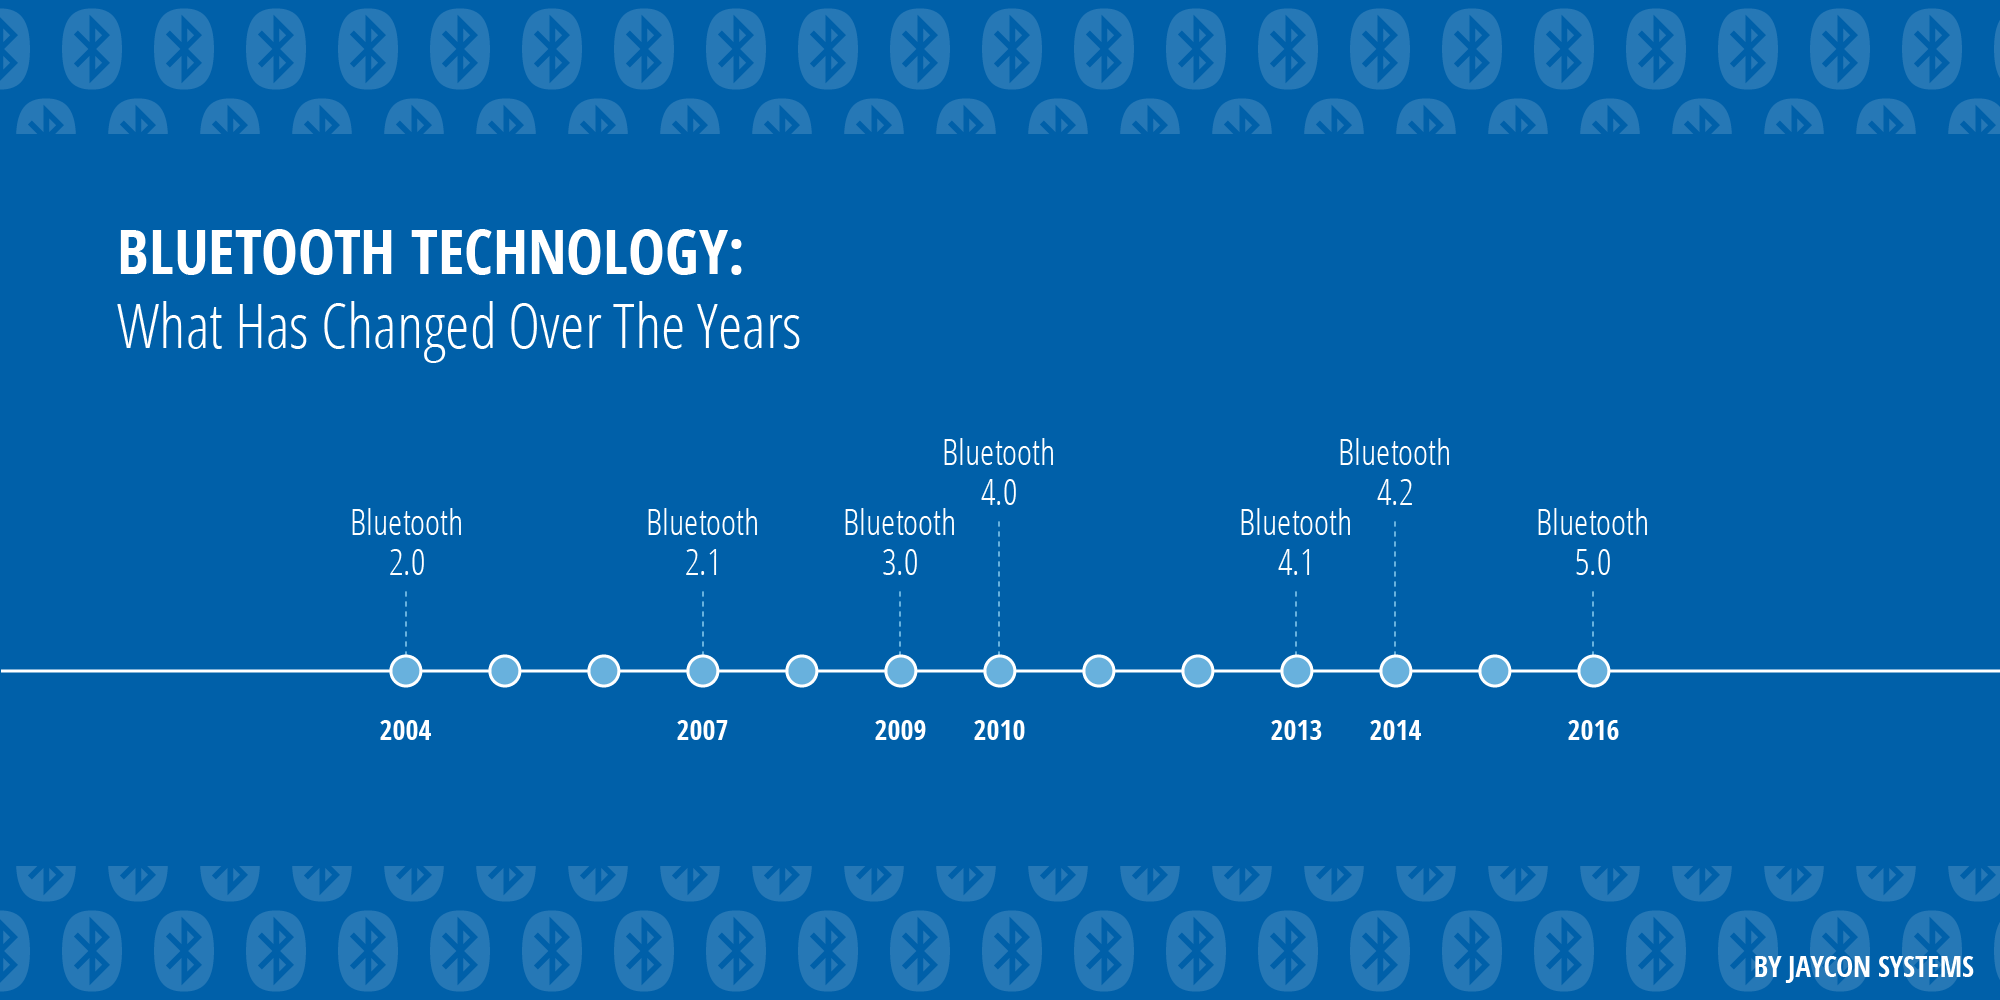 Bluetooth Technology: What Has Changed Over The Years